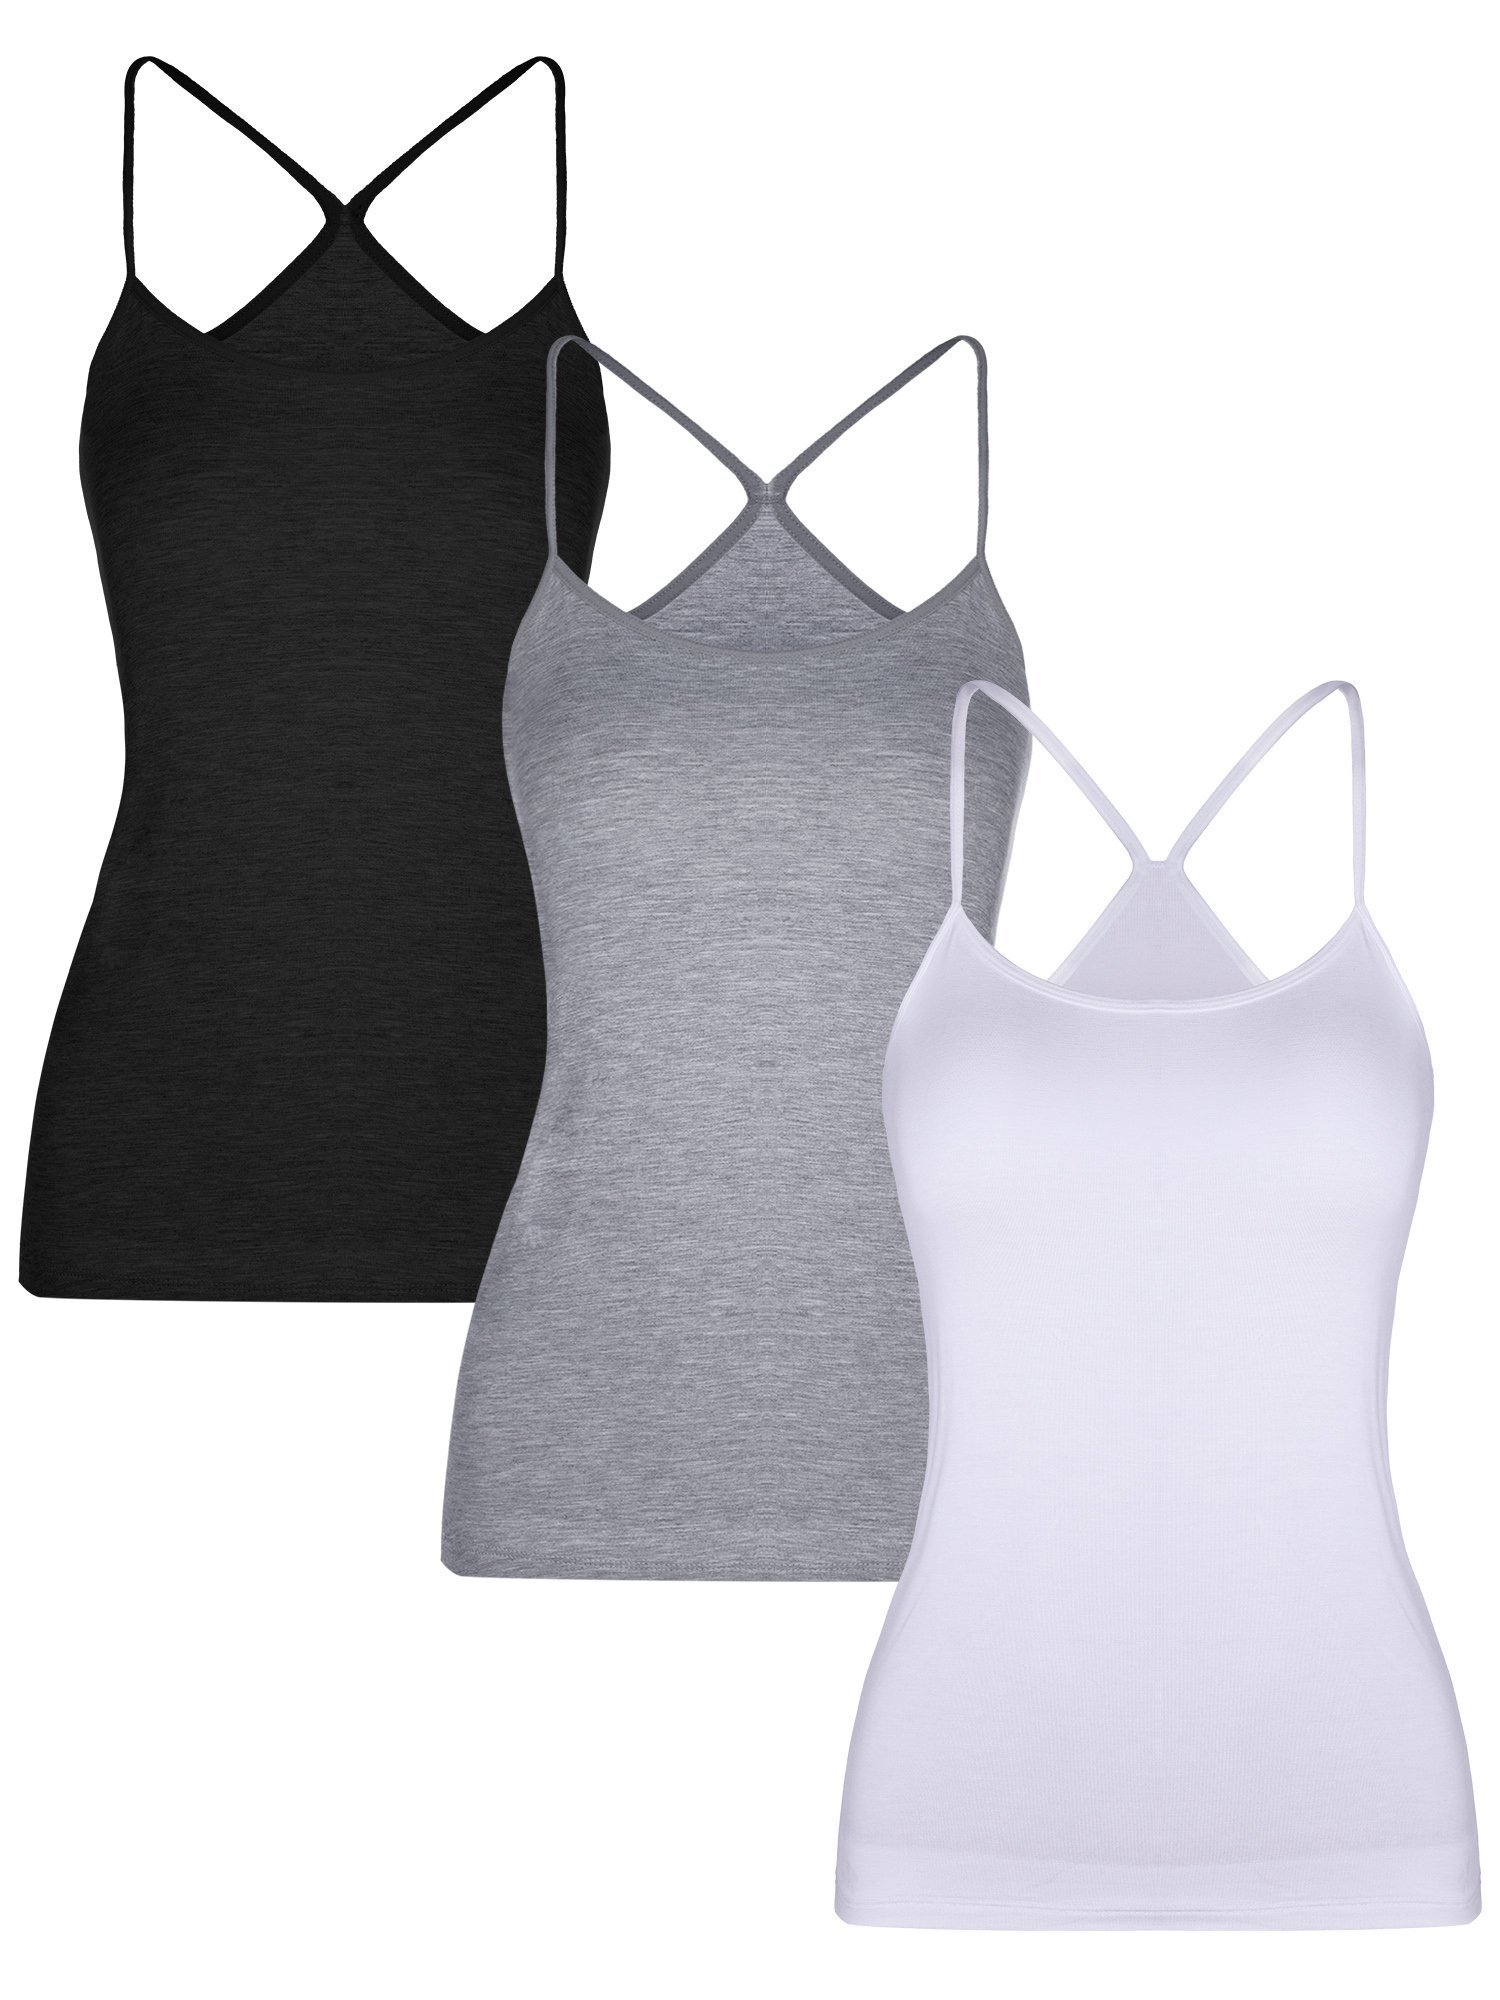 BOAO 3 Pieces Women Camisoles Seamless Basic Stretch Cami with Y-Back Spaghetti Strap Tank Tops, 3 Colors (M Size)